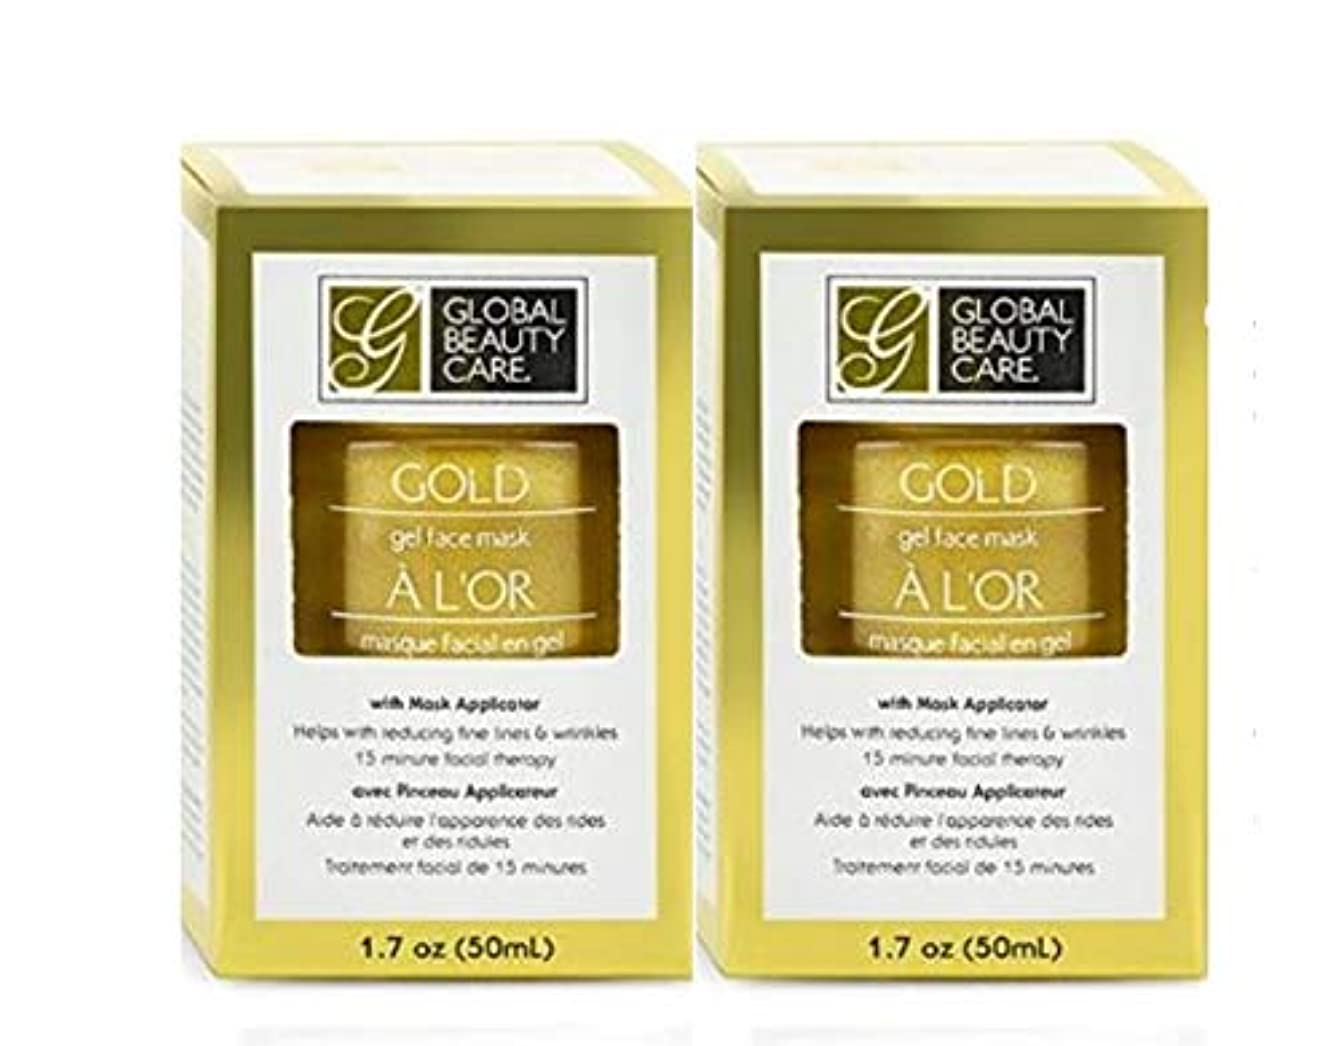 Global Beauty Care Gold Gel Face Mask, 2 Pack